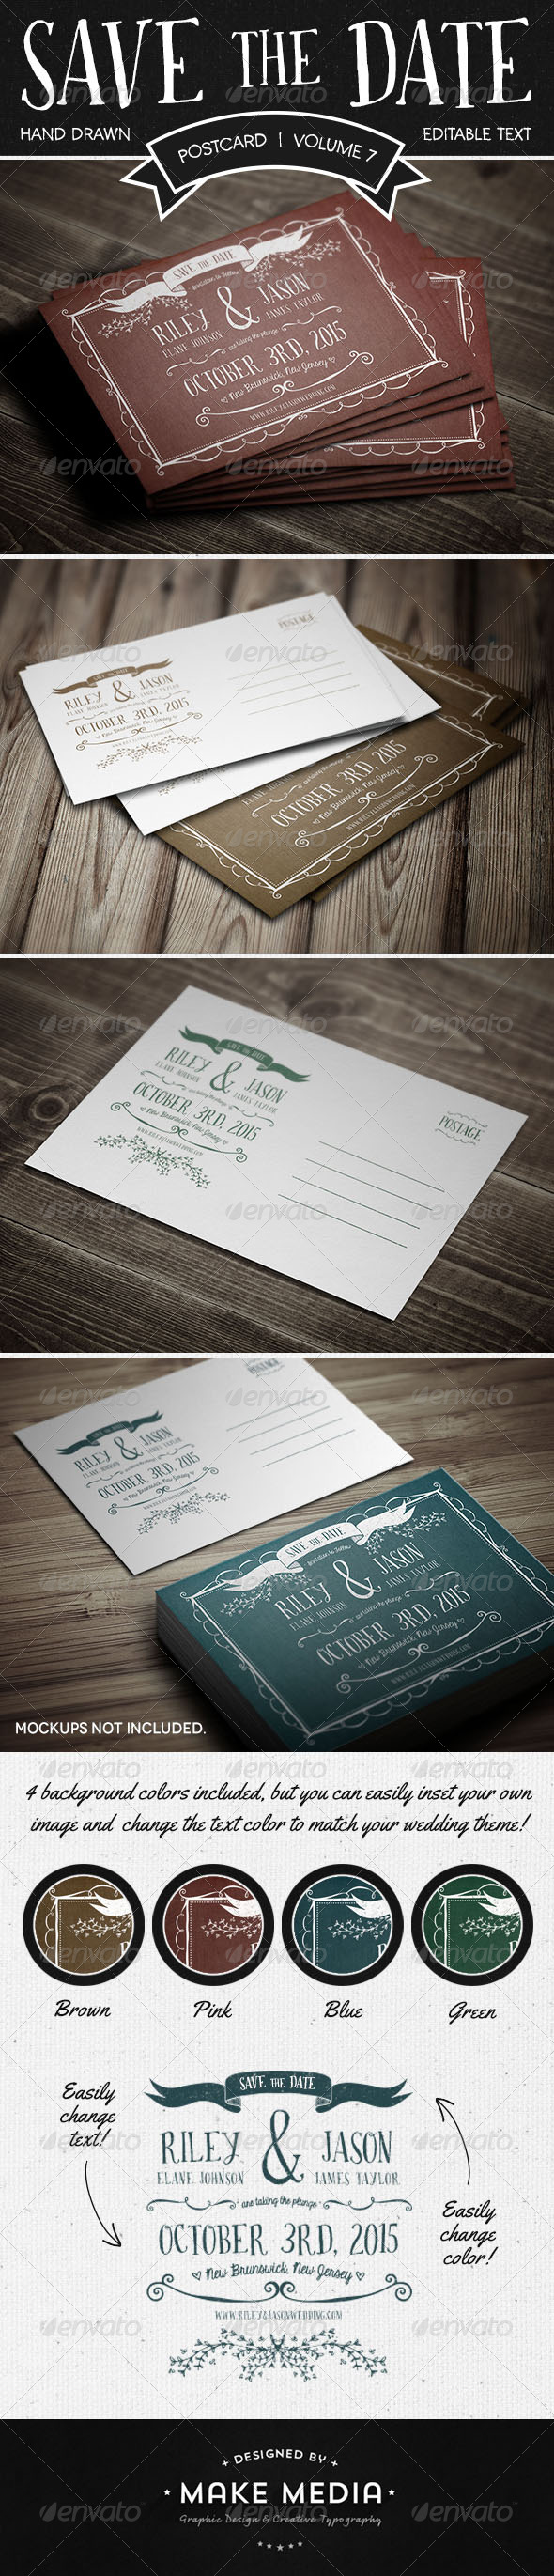 GraphicRiver Save The Date Postcard Volume 7 6815558